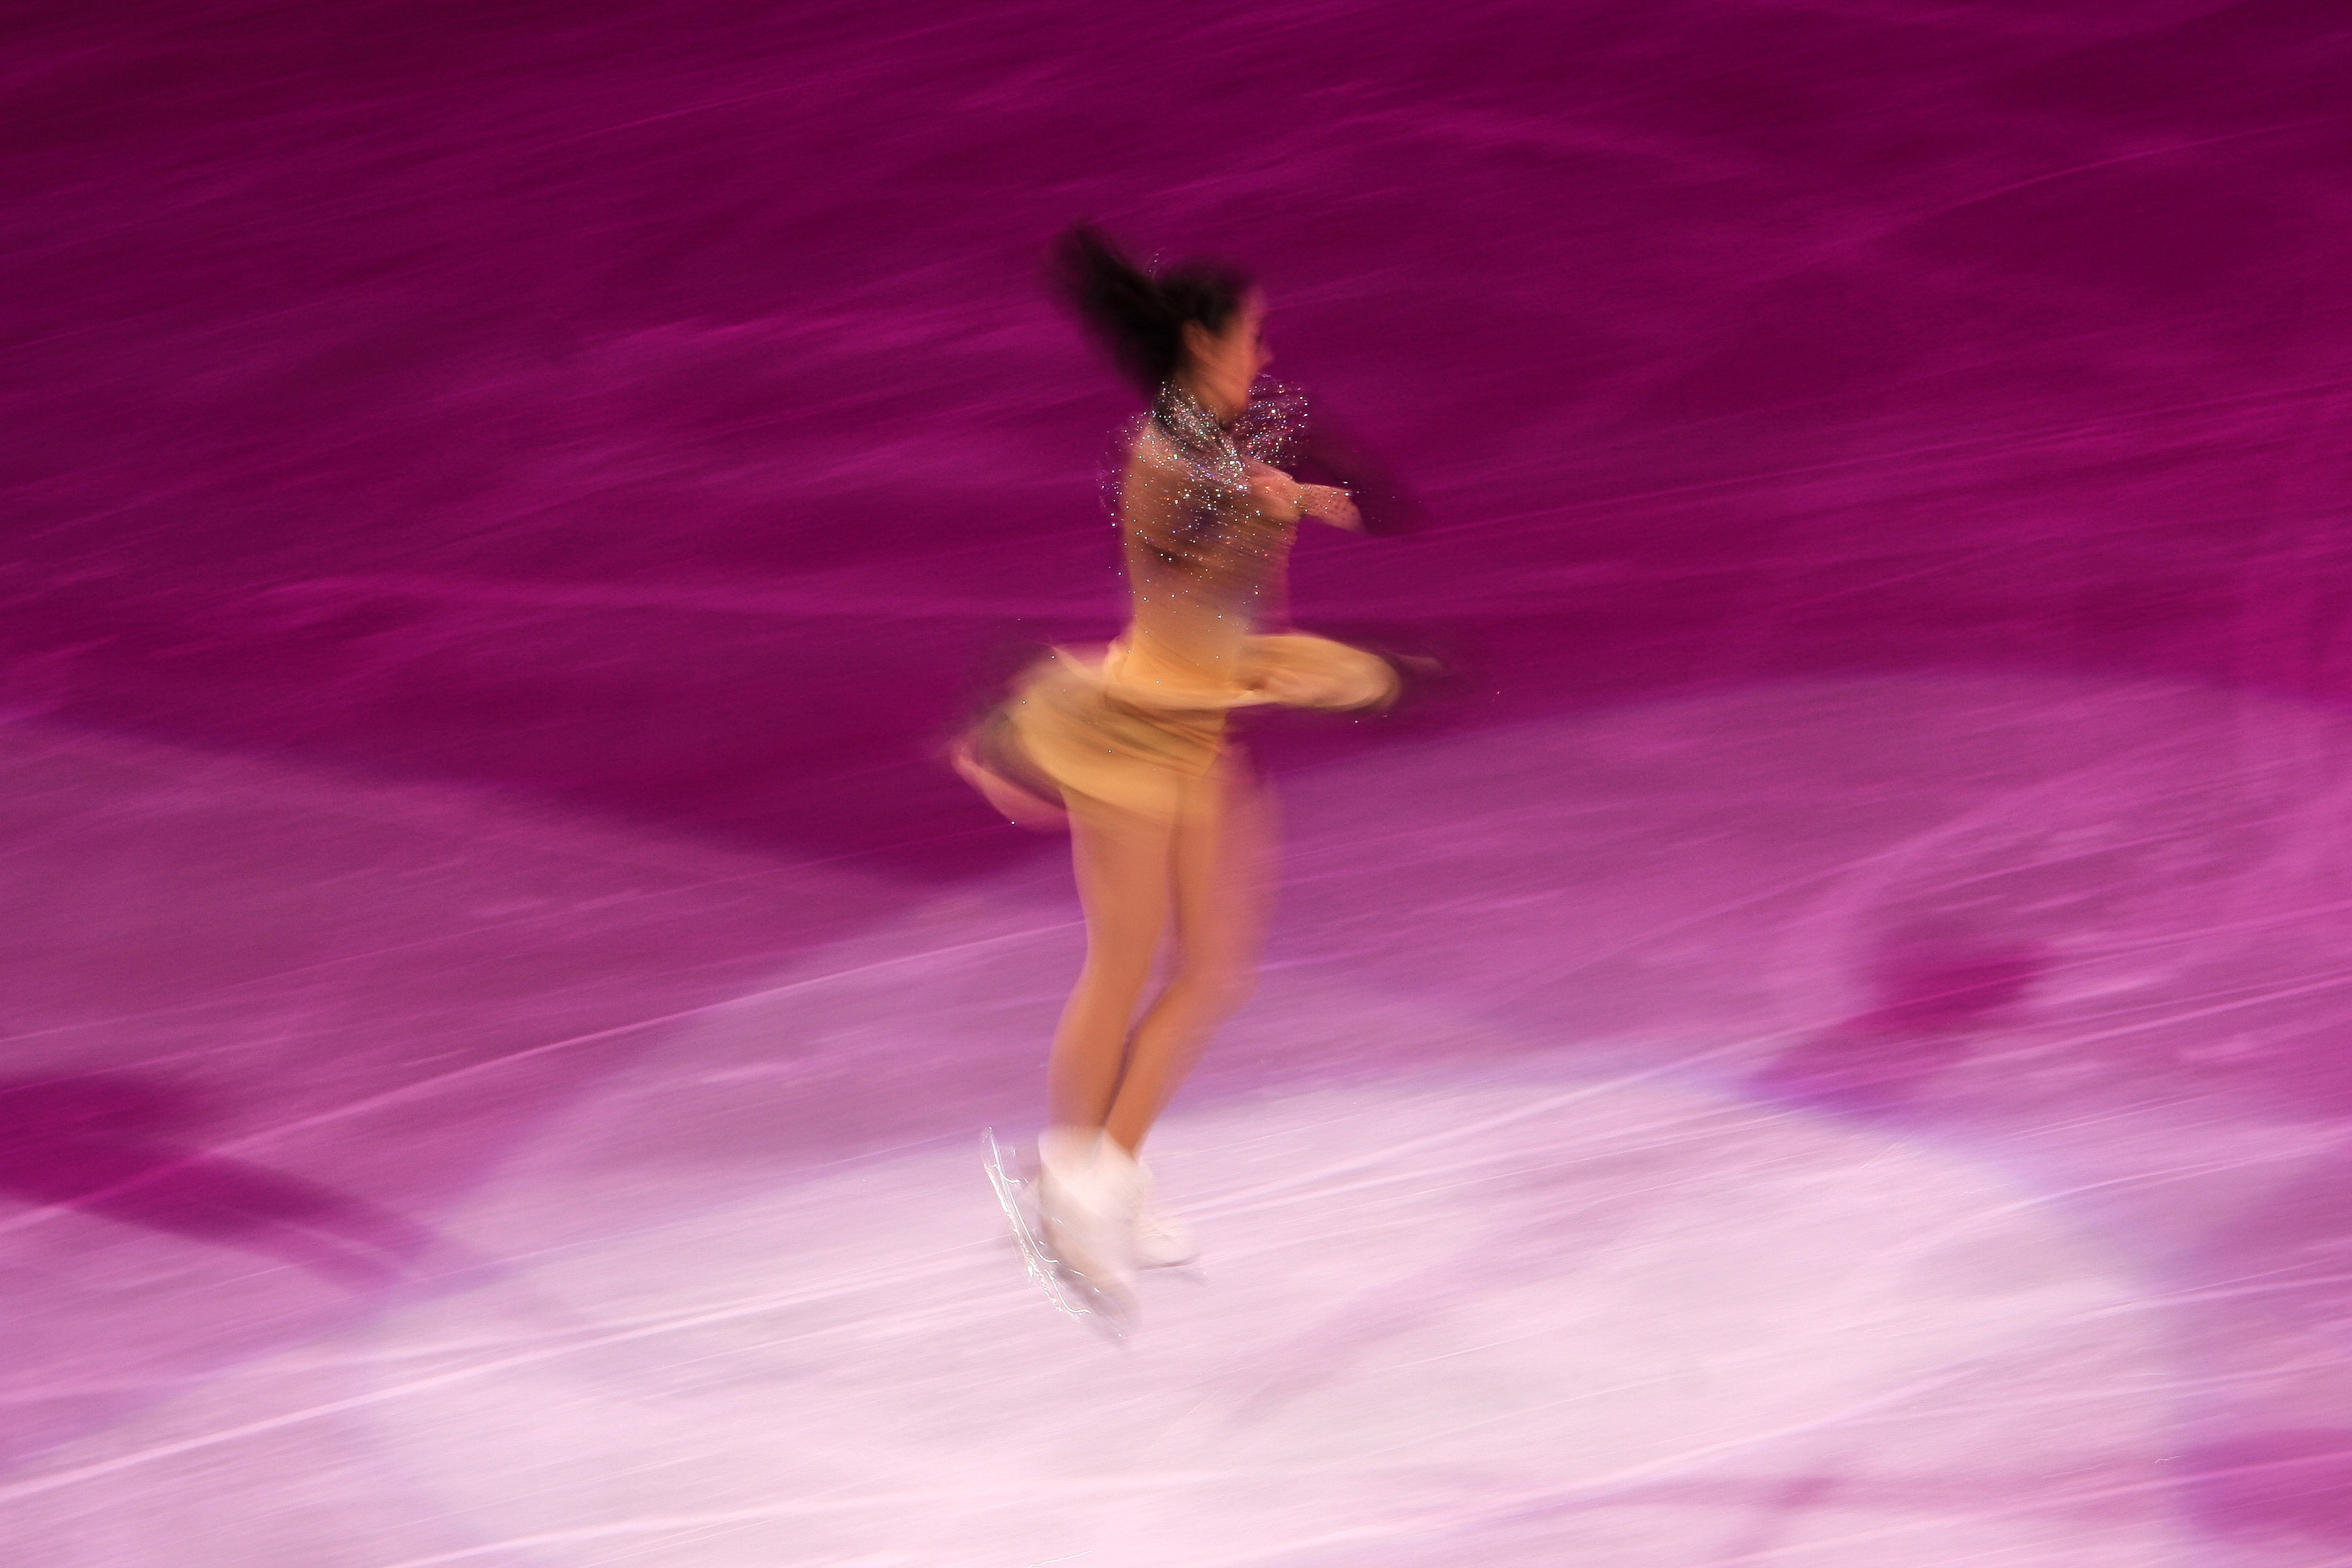 woman in beige performing ice skate